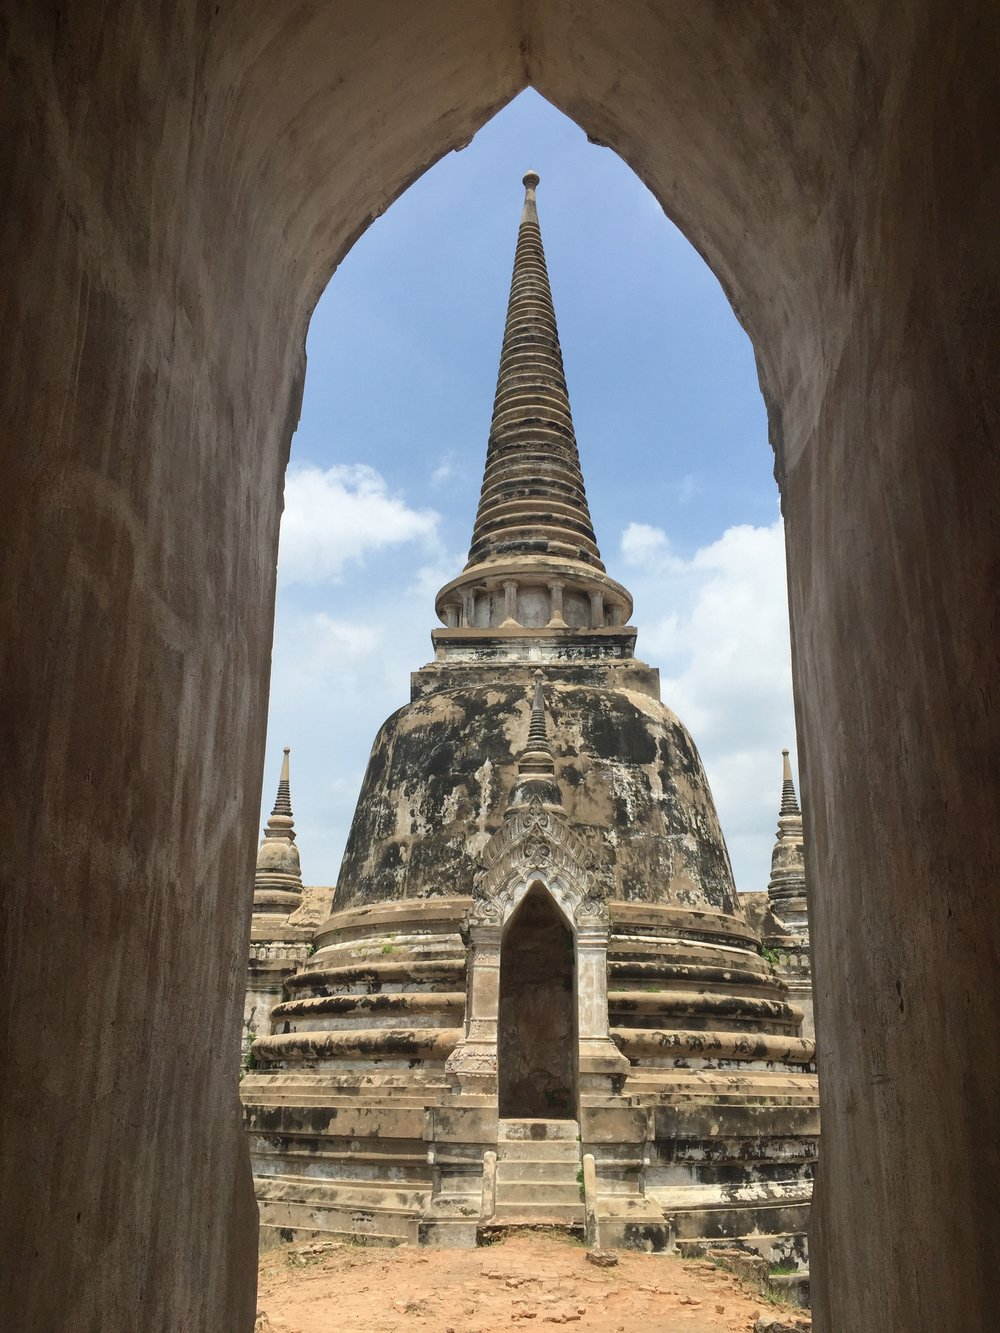 Wat Phra Si Sanphet was the holiest temple, located at the heart of the ancient Royal Palace. Of the formerly massive complex, only the three Chedis remain, hinting at the once-great Empire.